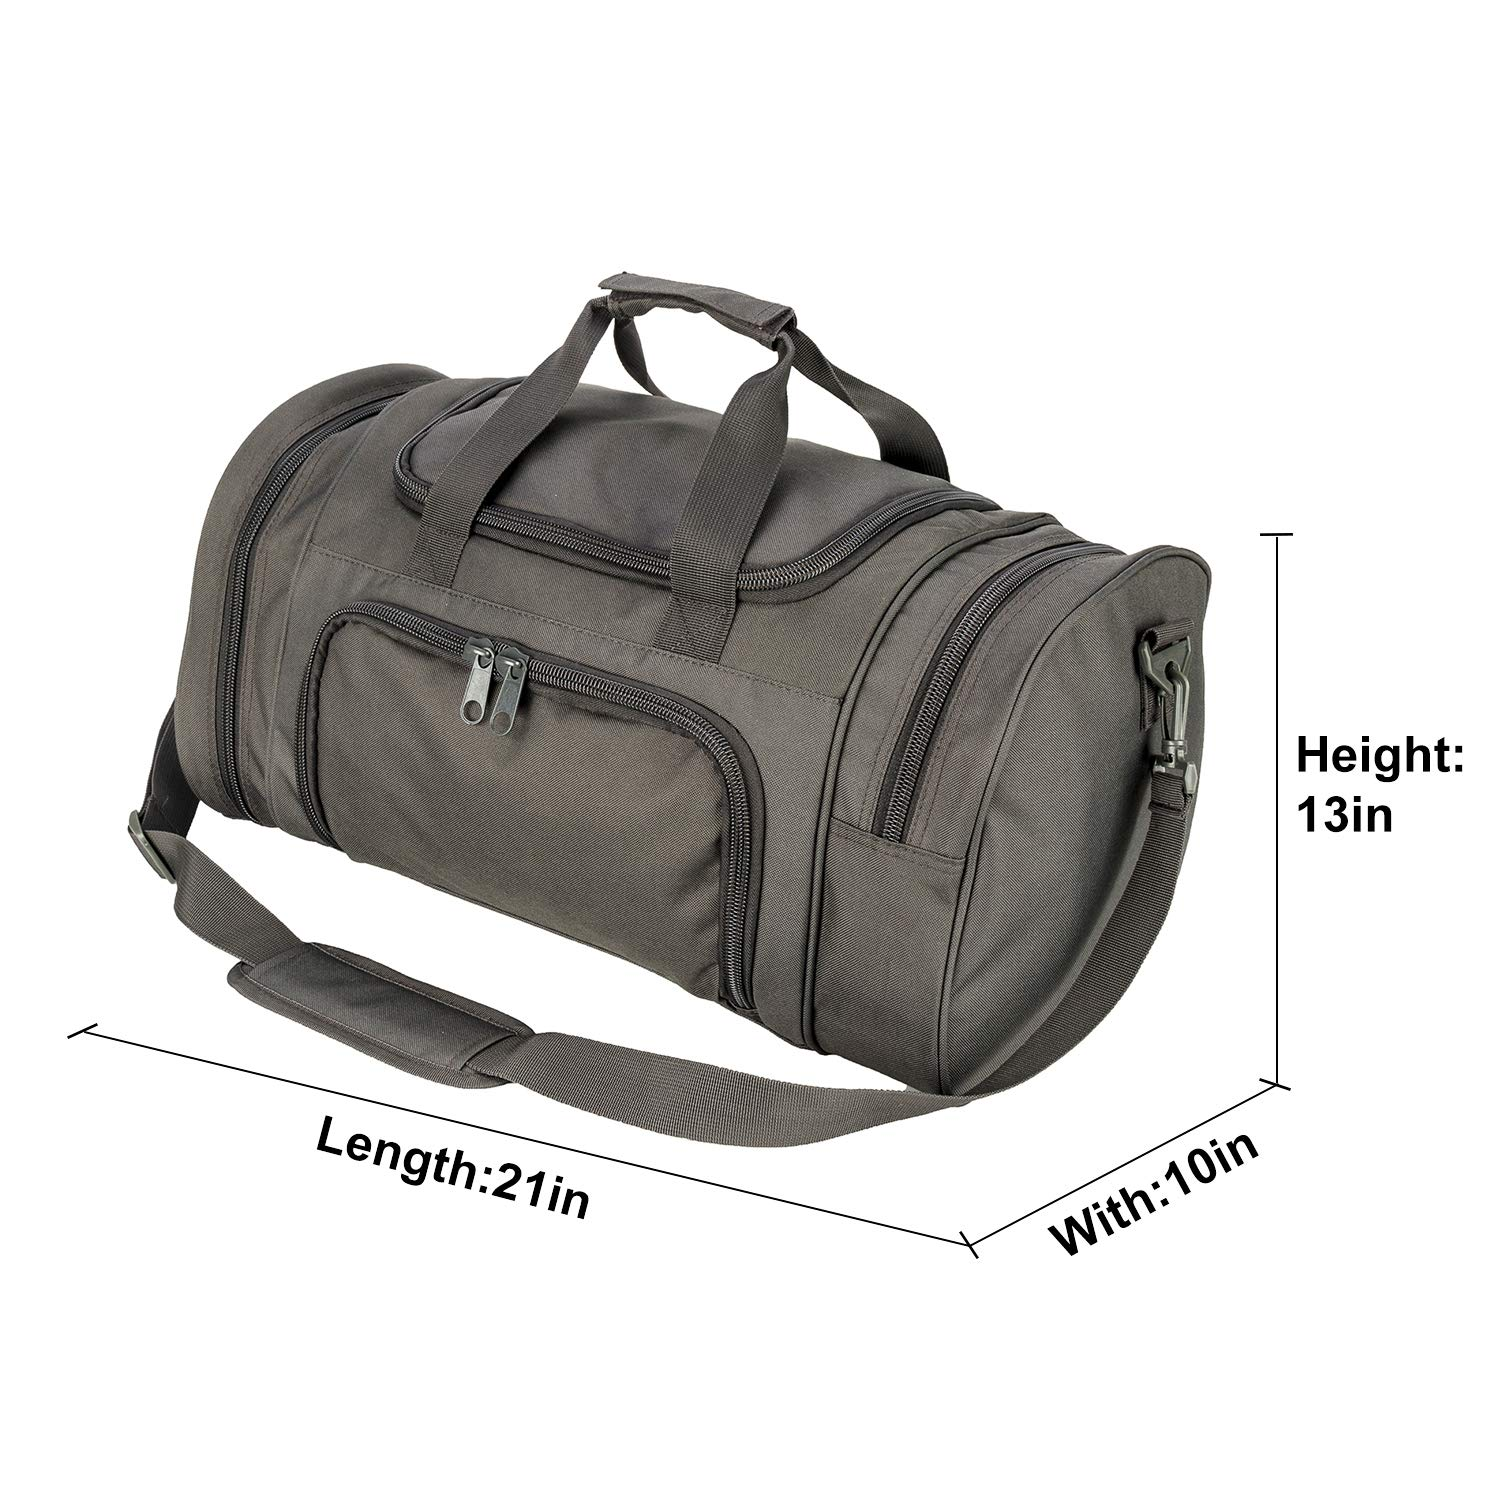 5d716c2eb6 Amazon.com  WolfWarriorX Men Military Tactical Locker Duffel Bags with  Shoes Compartment Large Storage Lightweight Workout Travel Vocation Hiking  Trekking ...